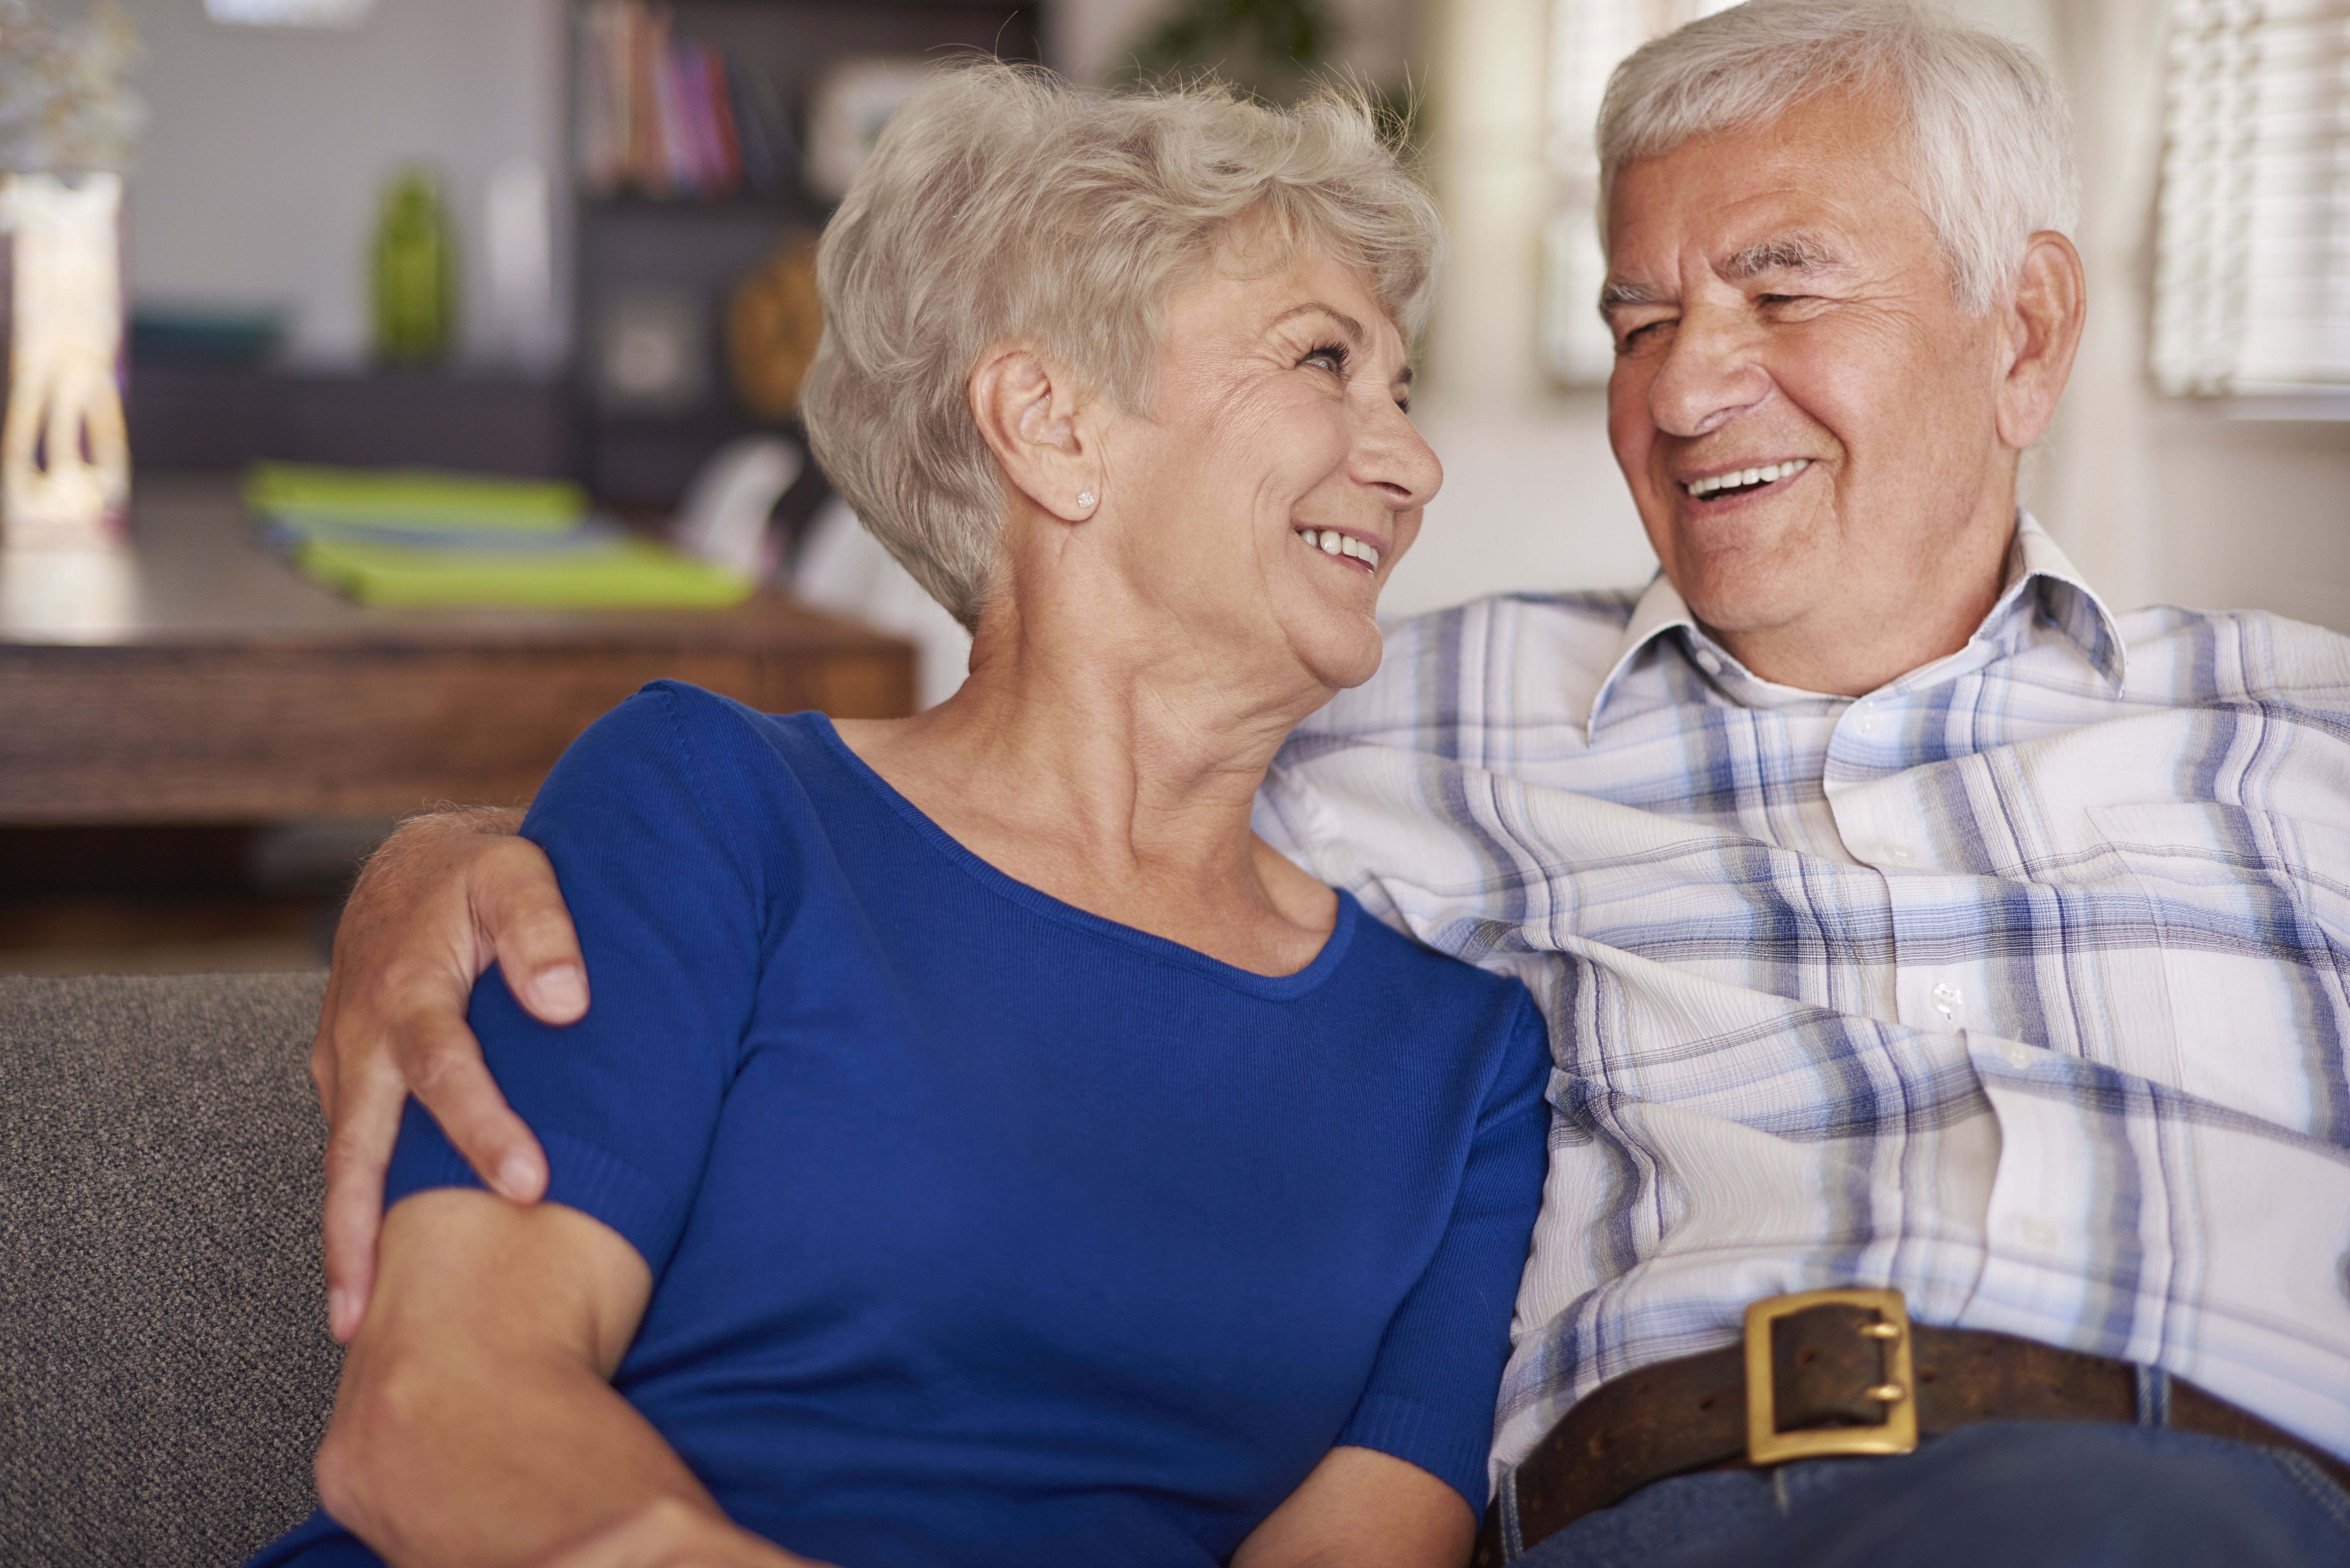 An elderly couple looking at each other while smiling. | Source: Shutterstock